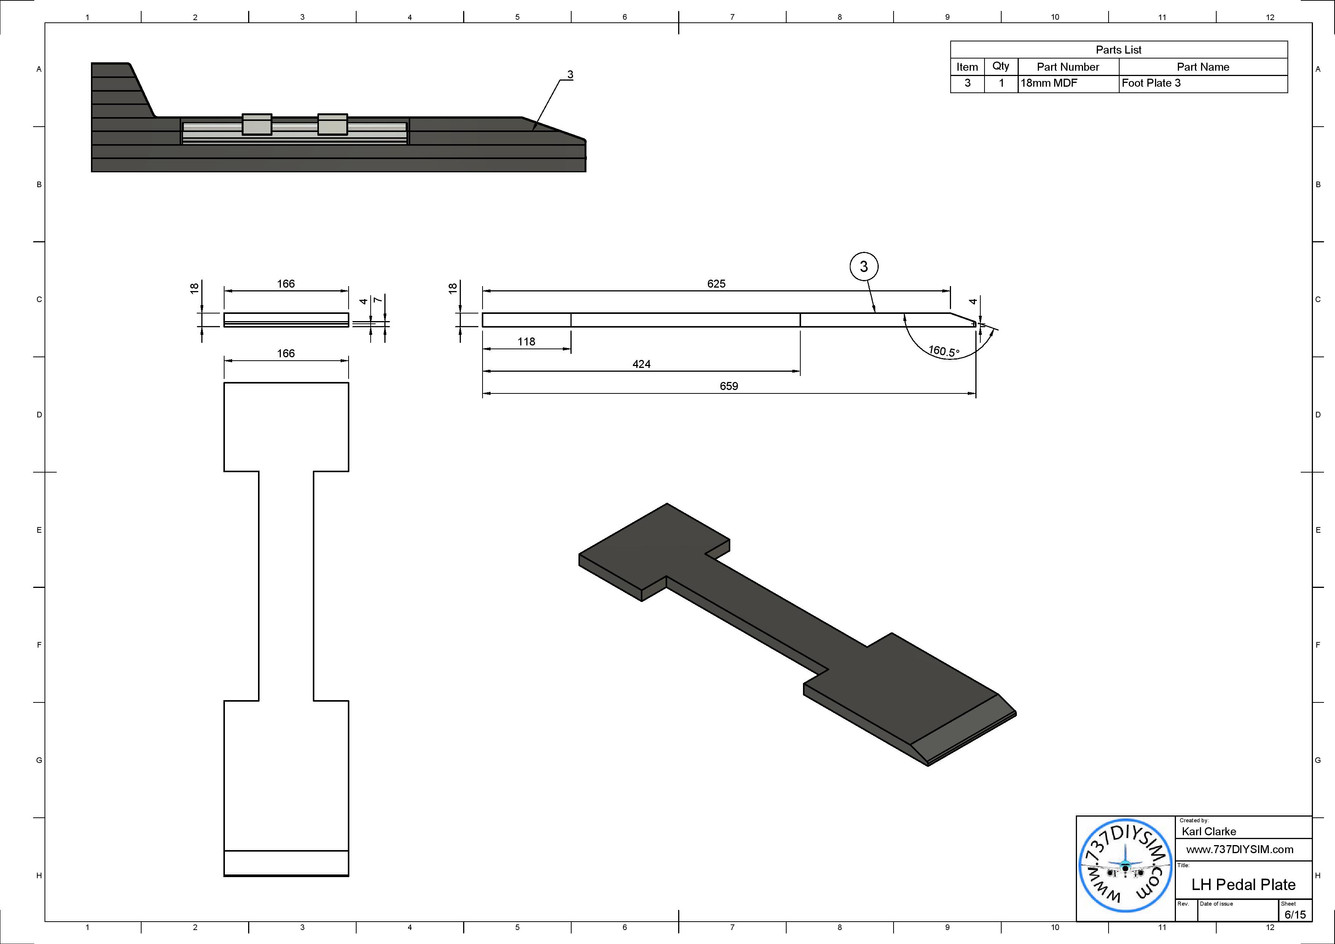 LH Pedal Plate Drawing v1-page-006.jpg